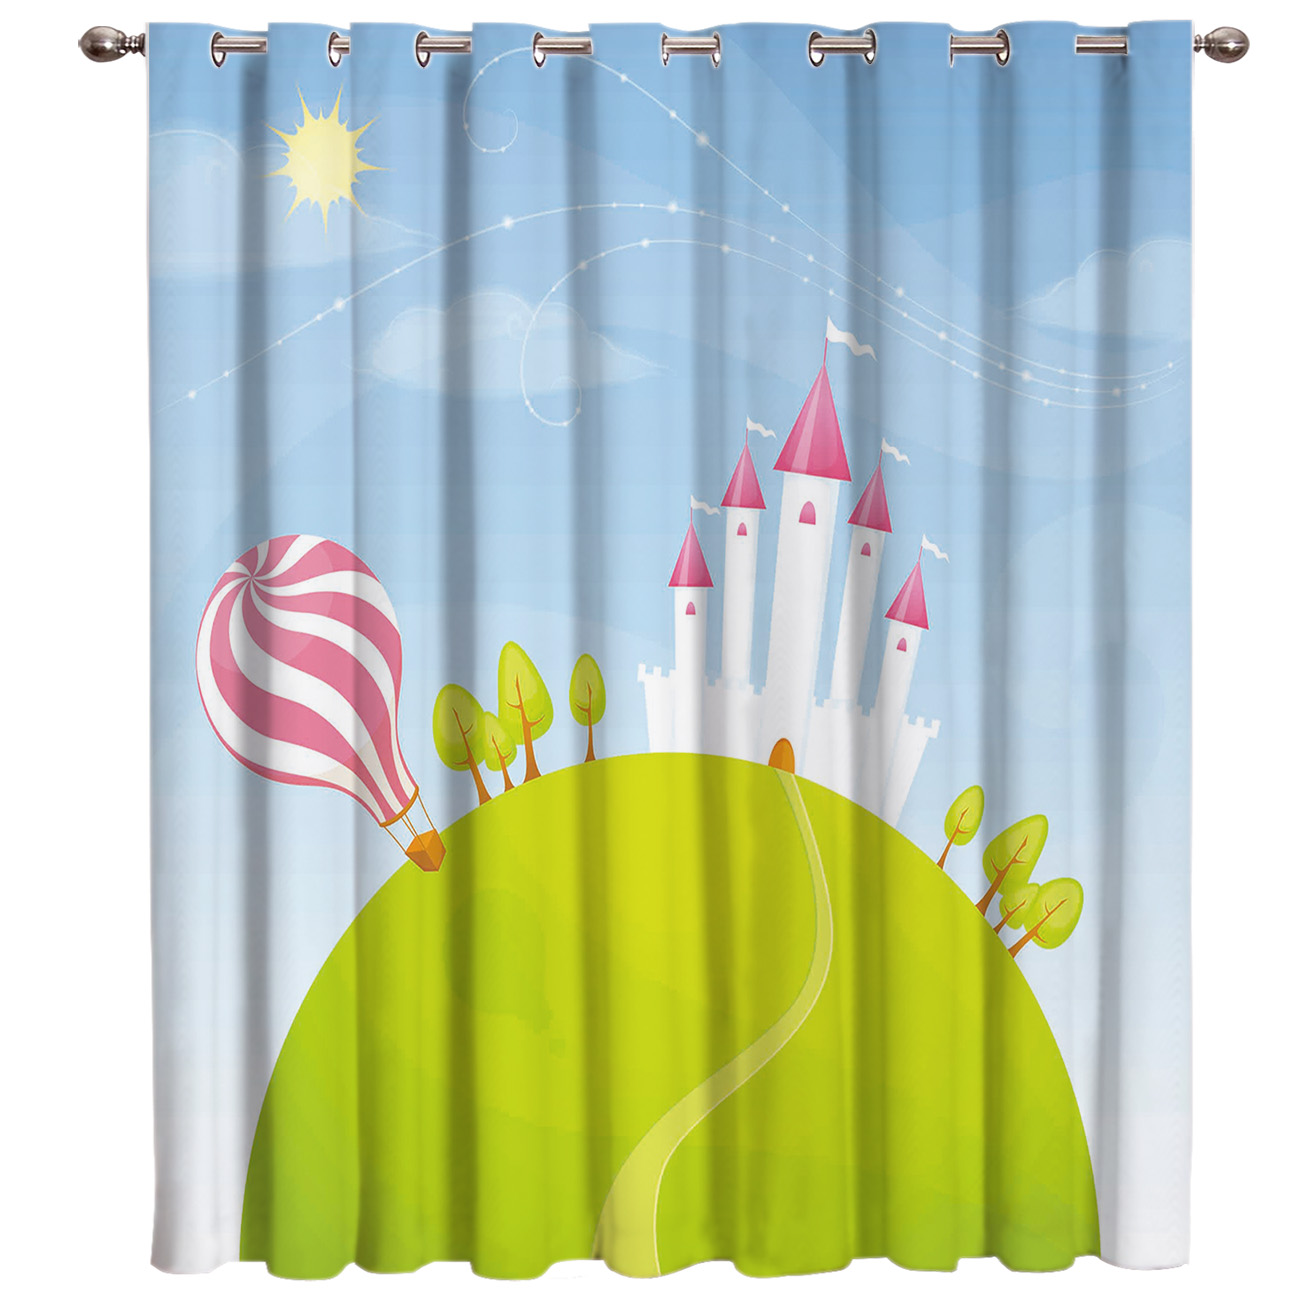 Cartoon Hot Balloon Castle House Window Treatments Curtains Valance Living Room Blackout Decor Kids Curtain Panels With Grommets